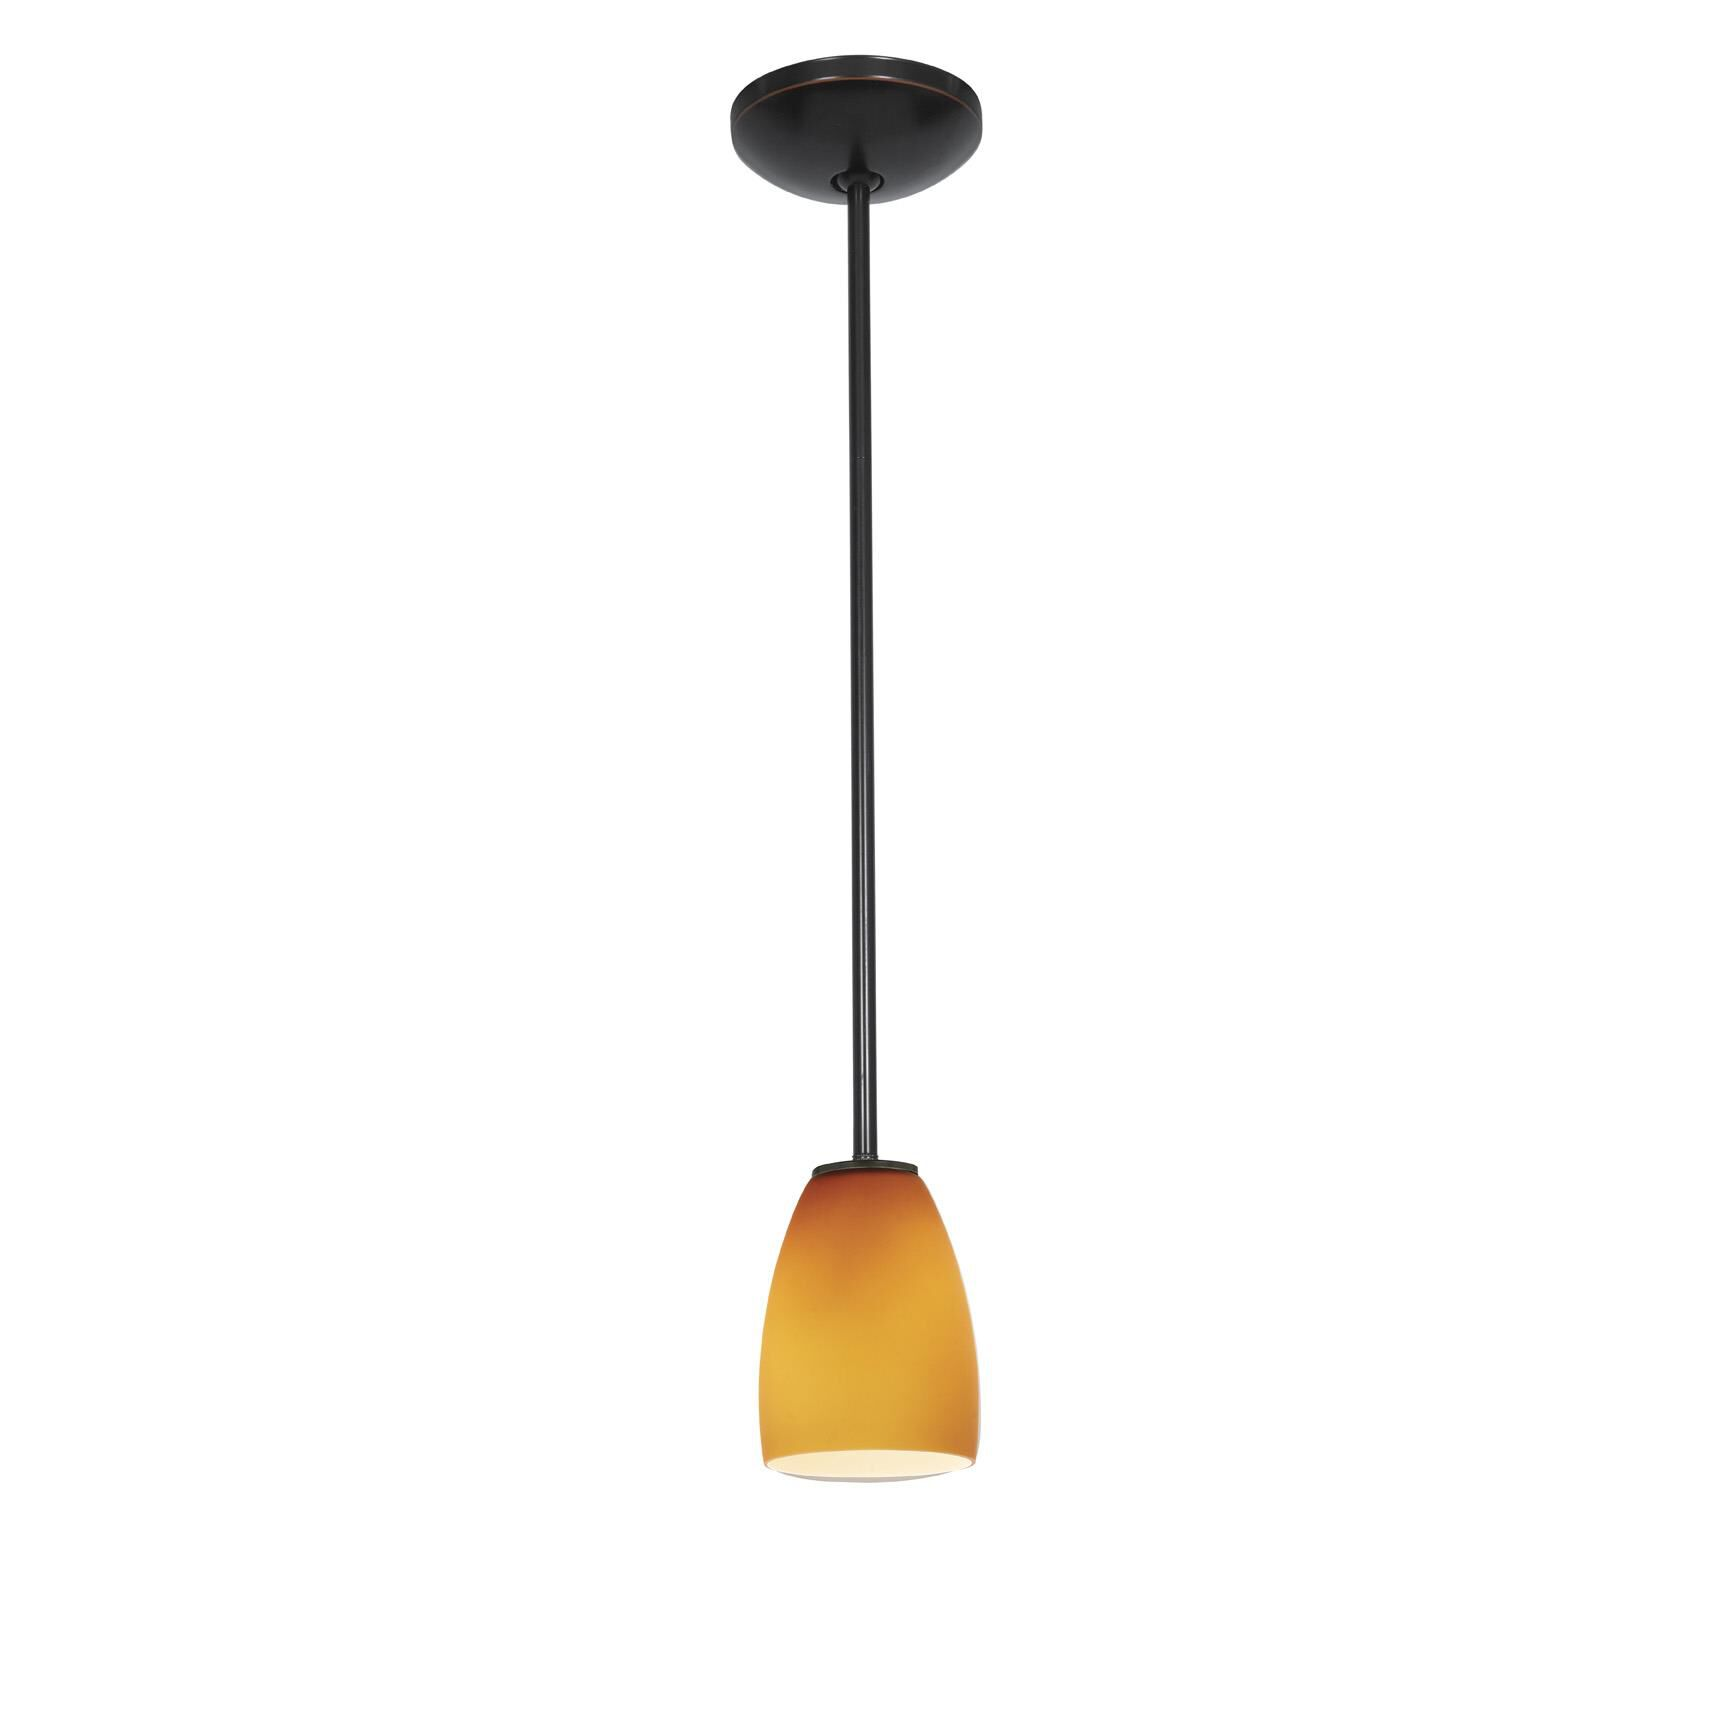 Access Lighting Sherry 6 Inch Mini Pendant Sherry 28069 1R ORBAMB Modern Contemporary